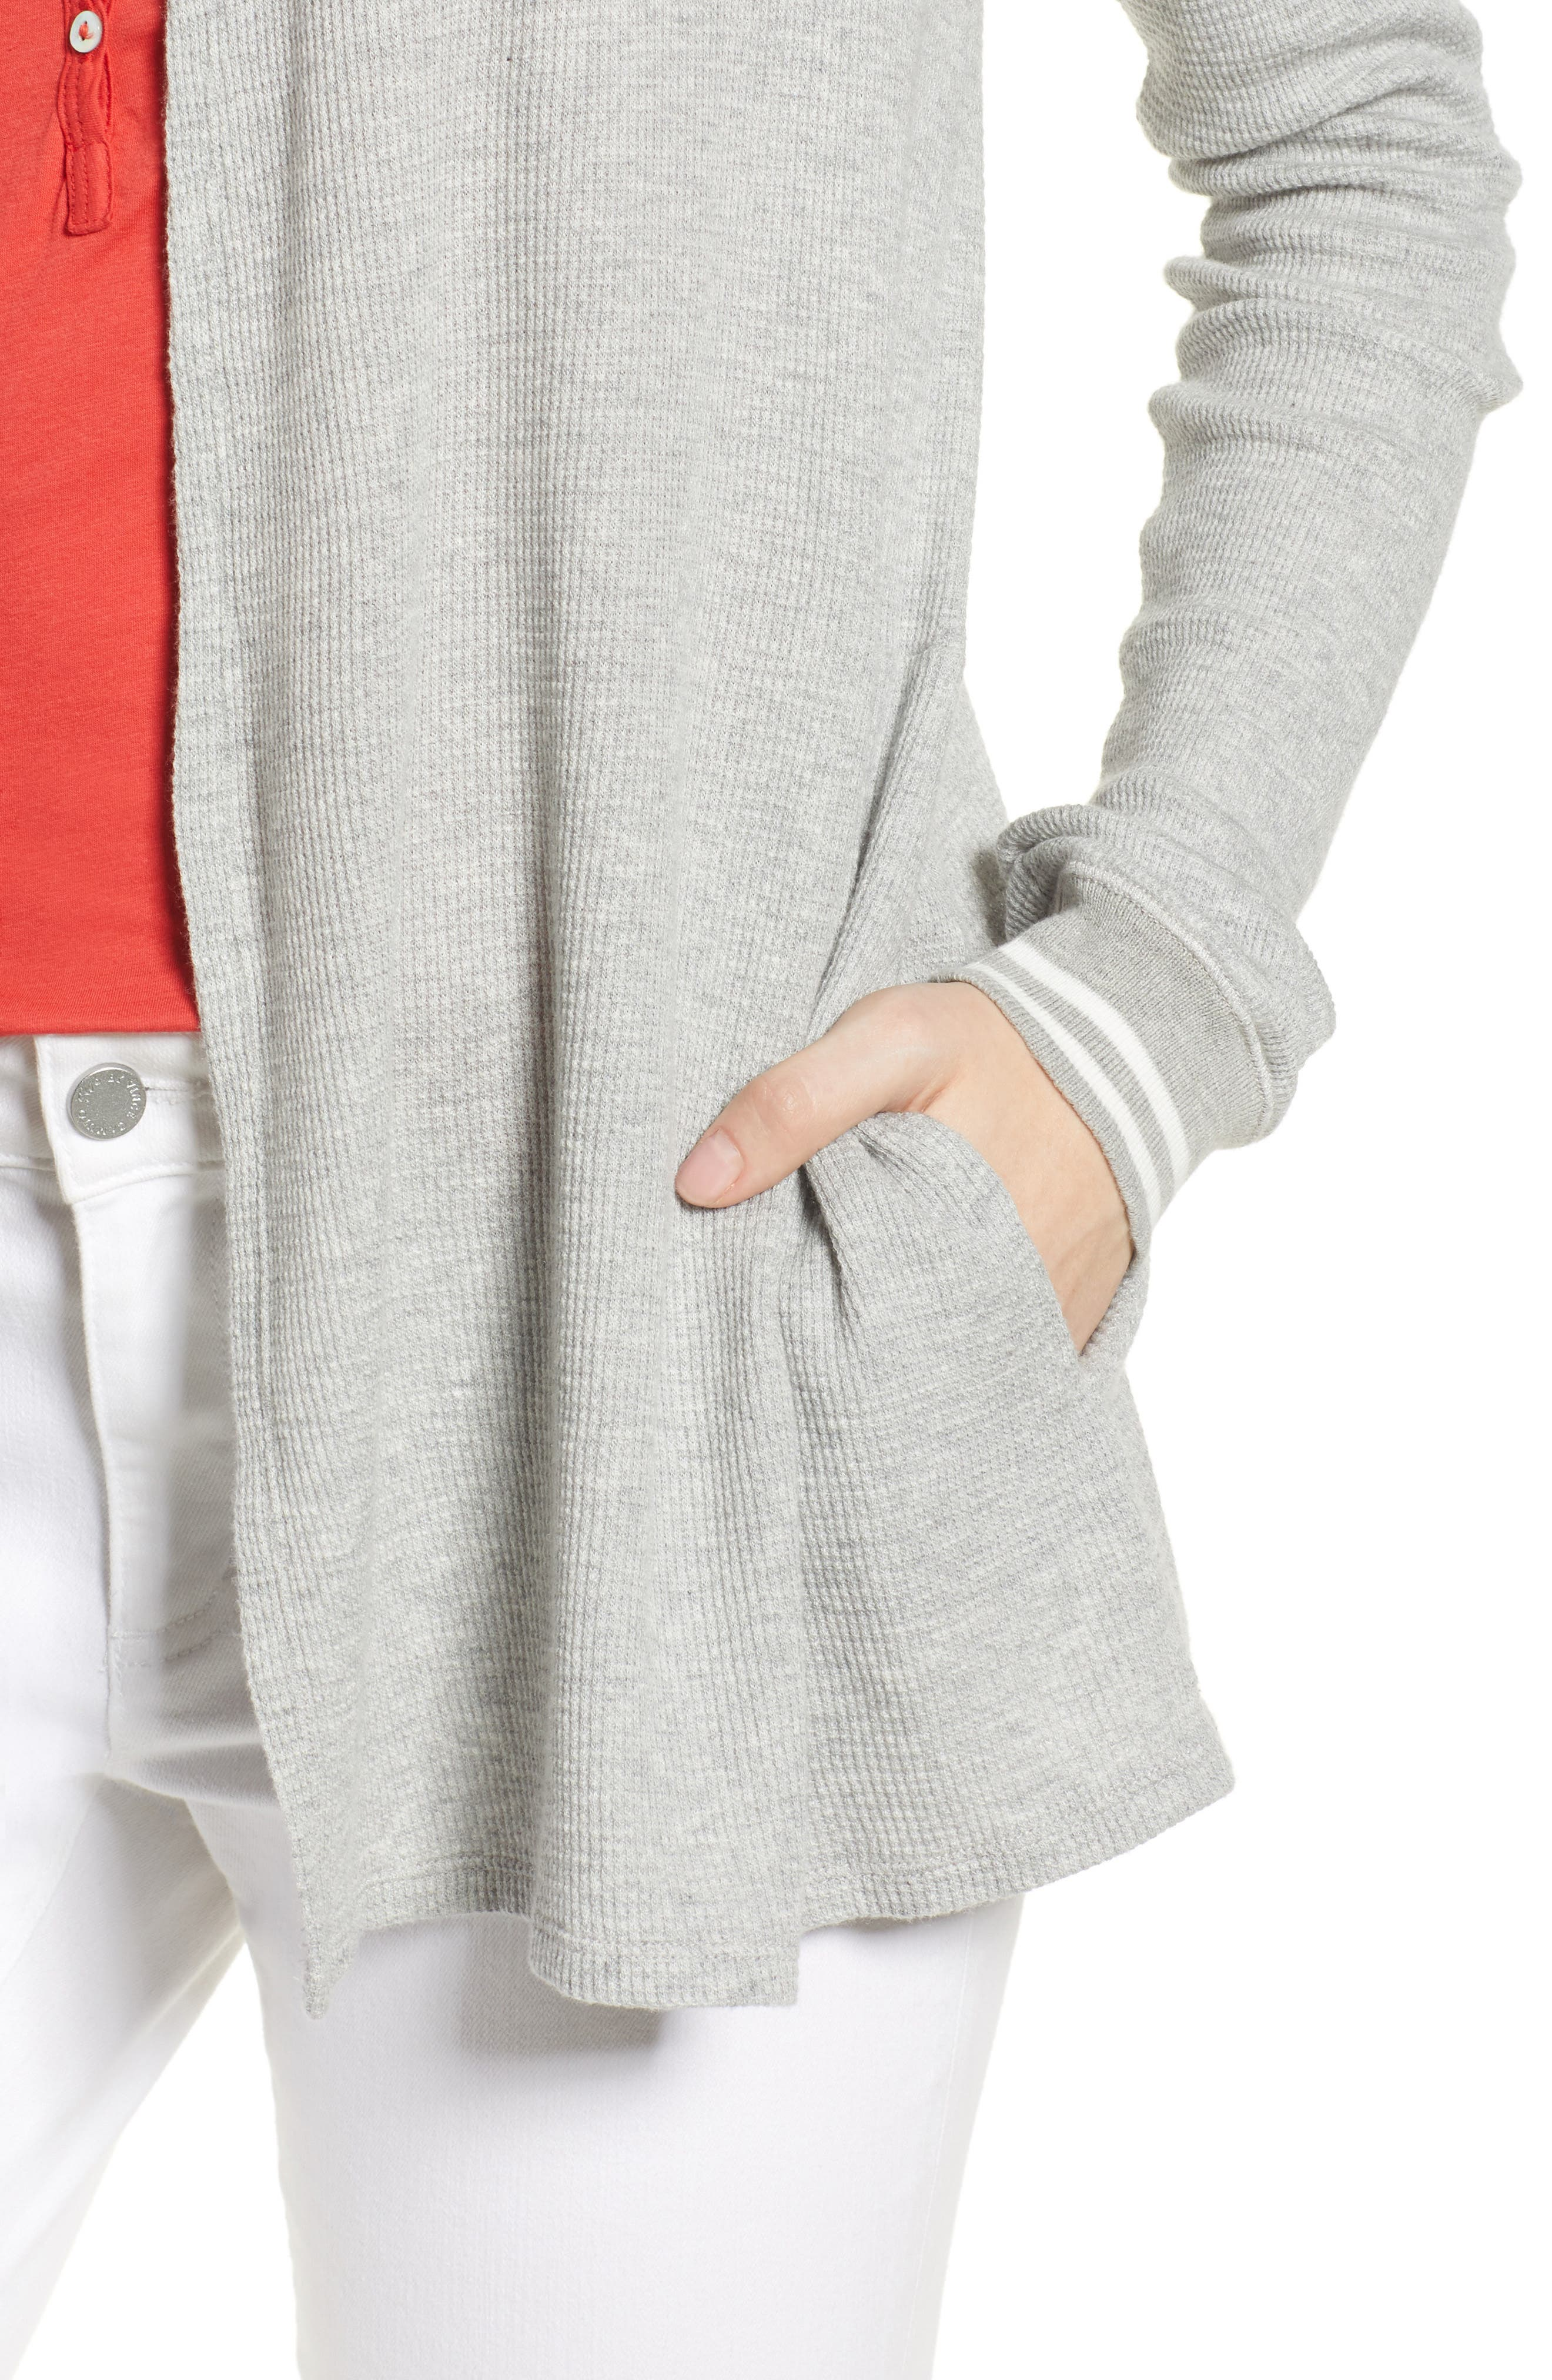 Baby Thermal Open Knit Cardigan,                             Alternate thumbnail 4, color,                             050